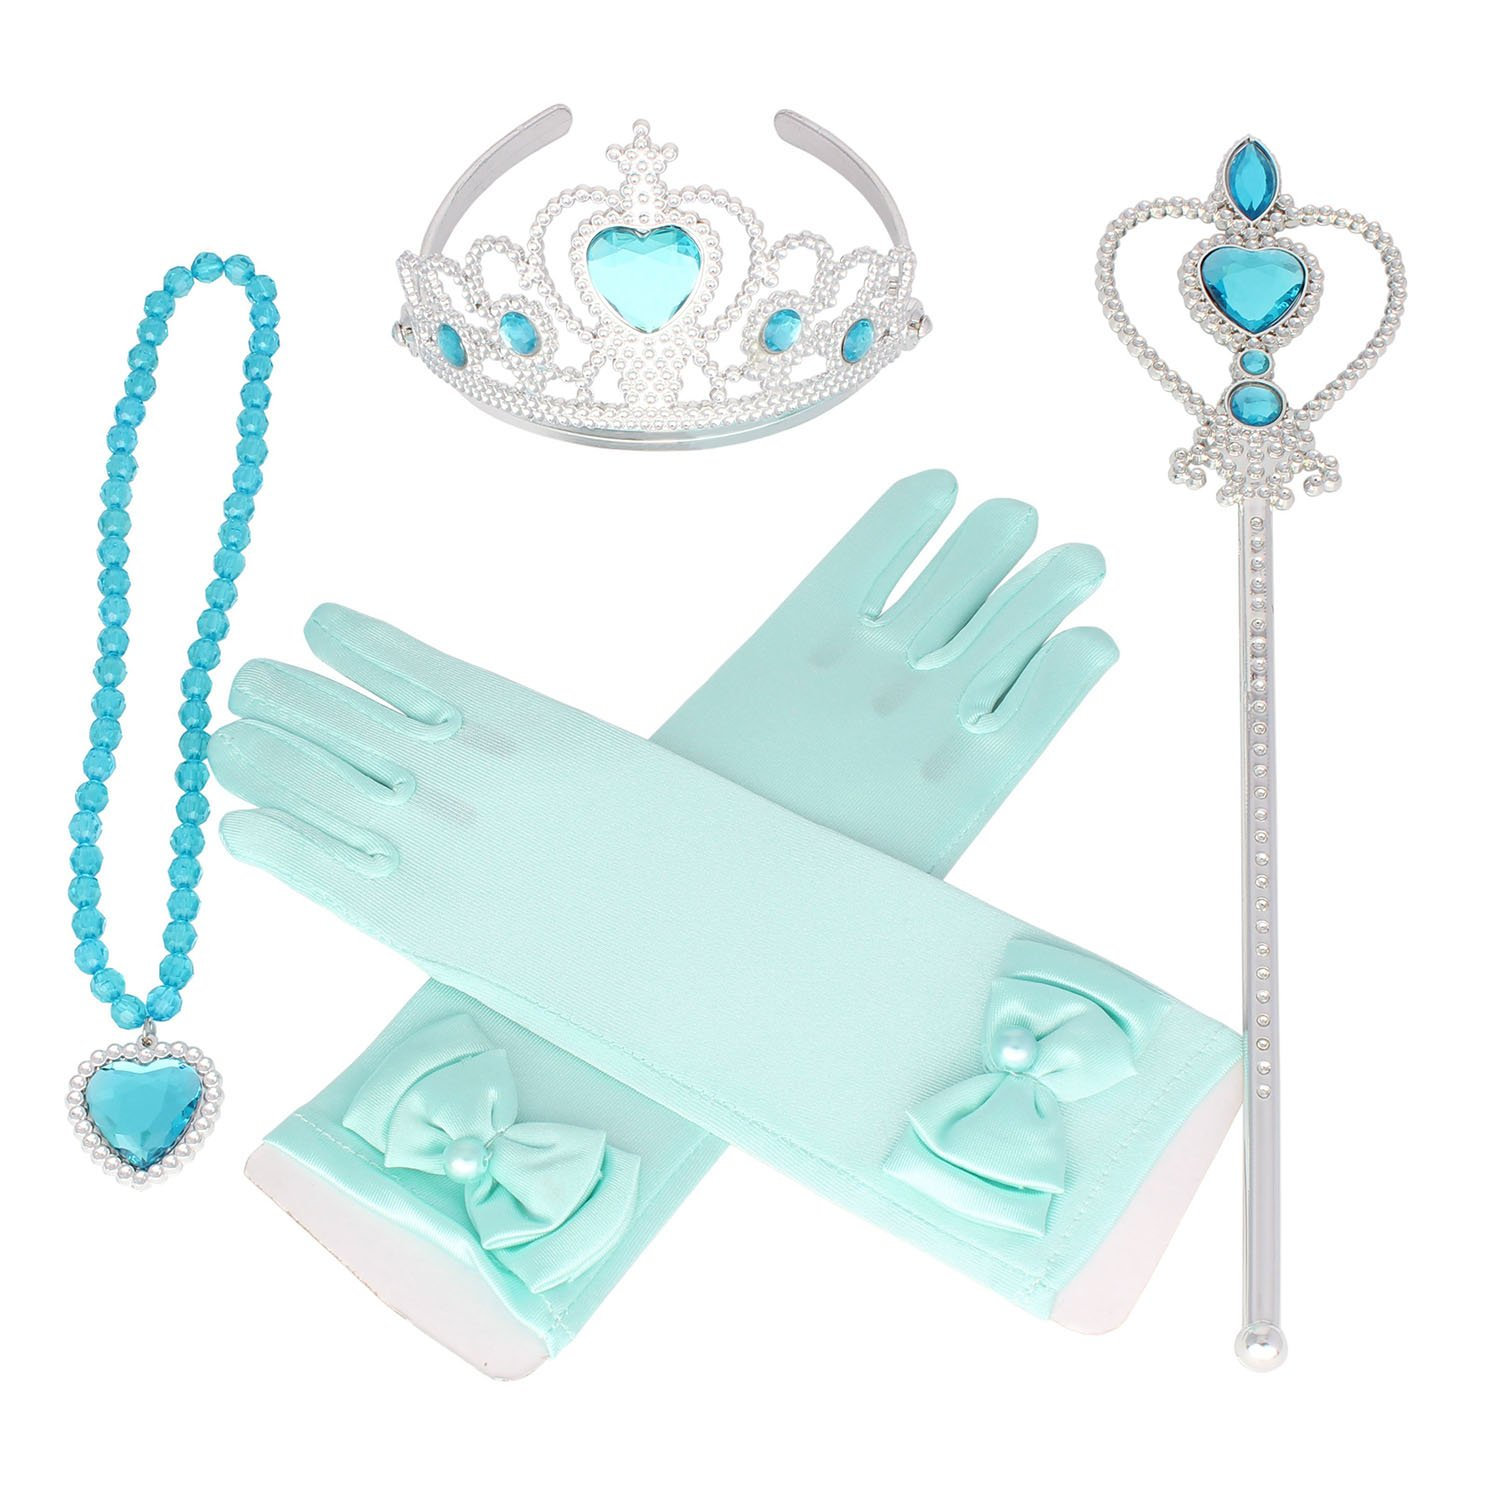 Tiaras and Crowns for Little Girls Princess Wands Gloves Tiara and Necklace Set 4 Ps Sky Blue